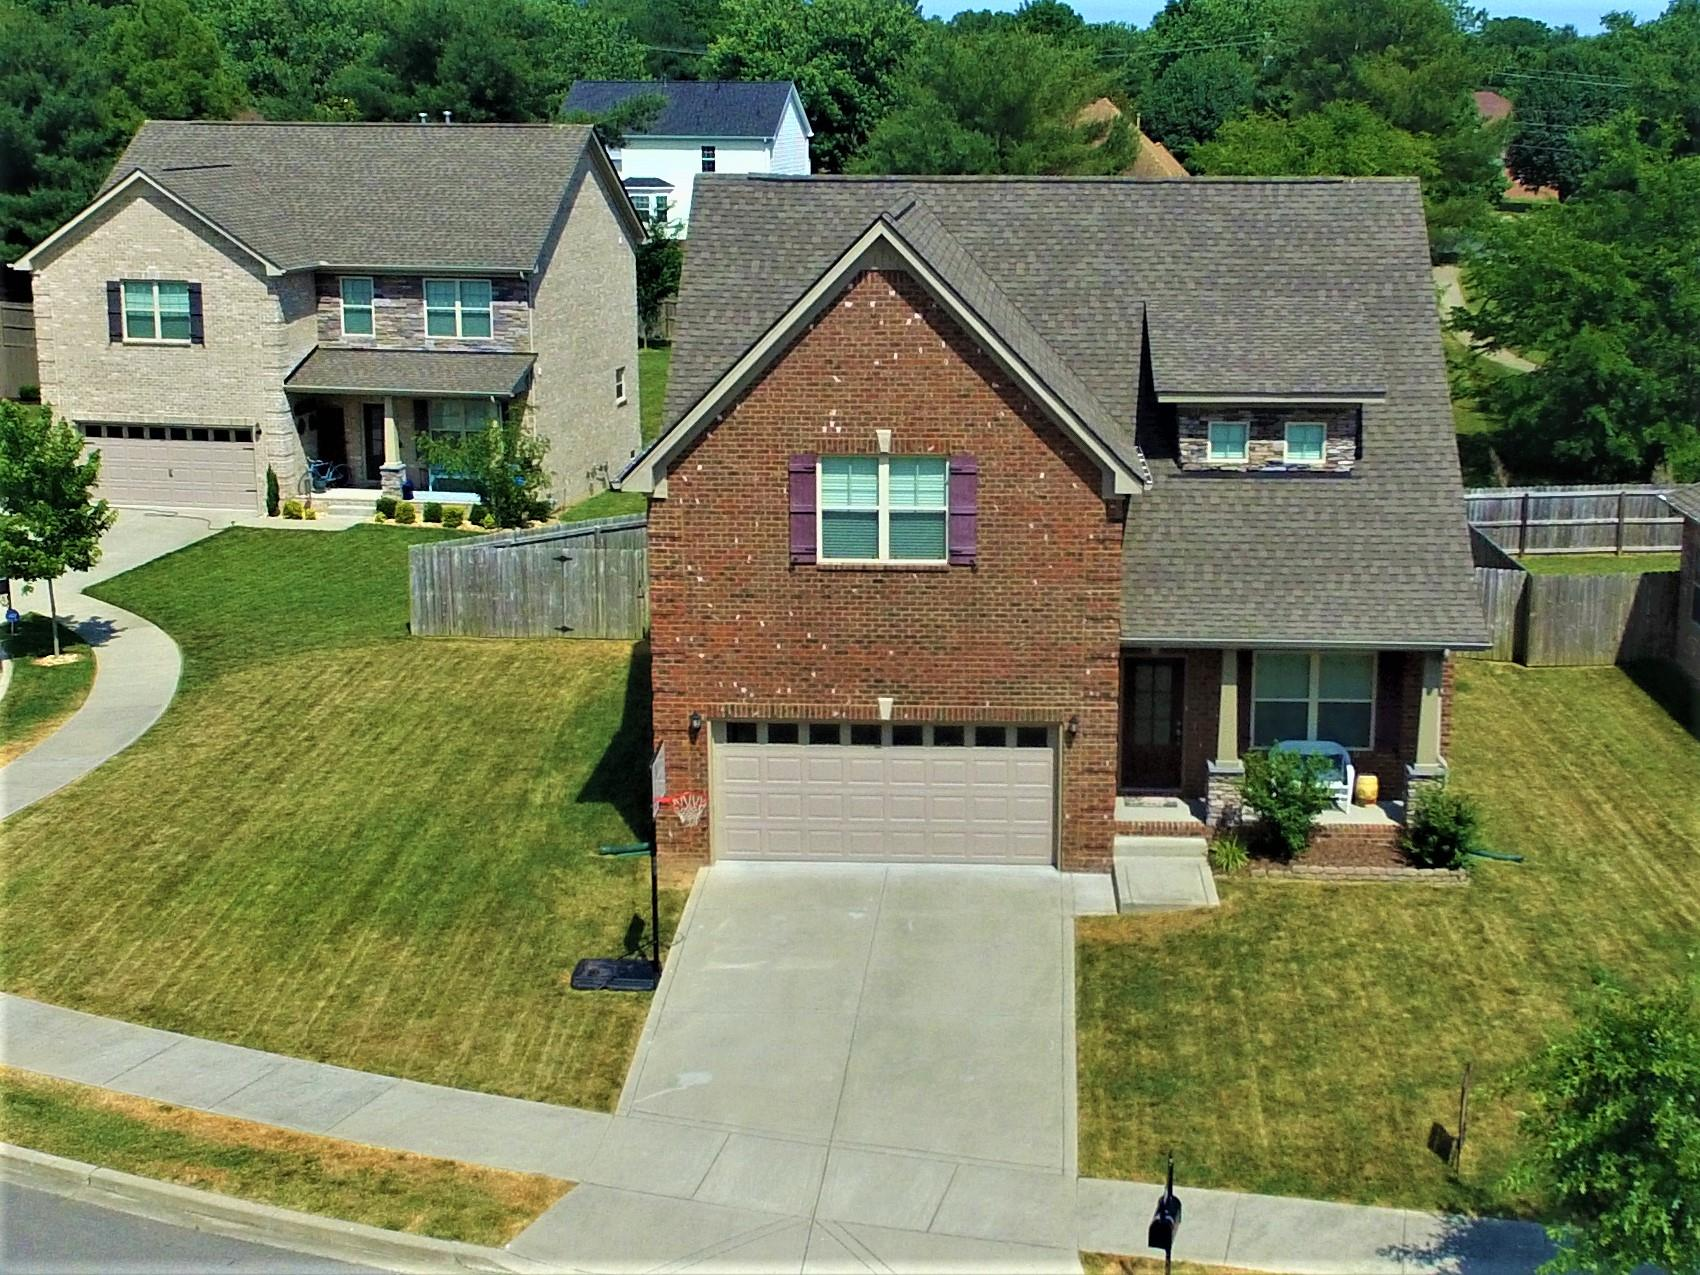 1080 Sagewood Dr, E, Gallatin, Tennessee